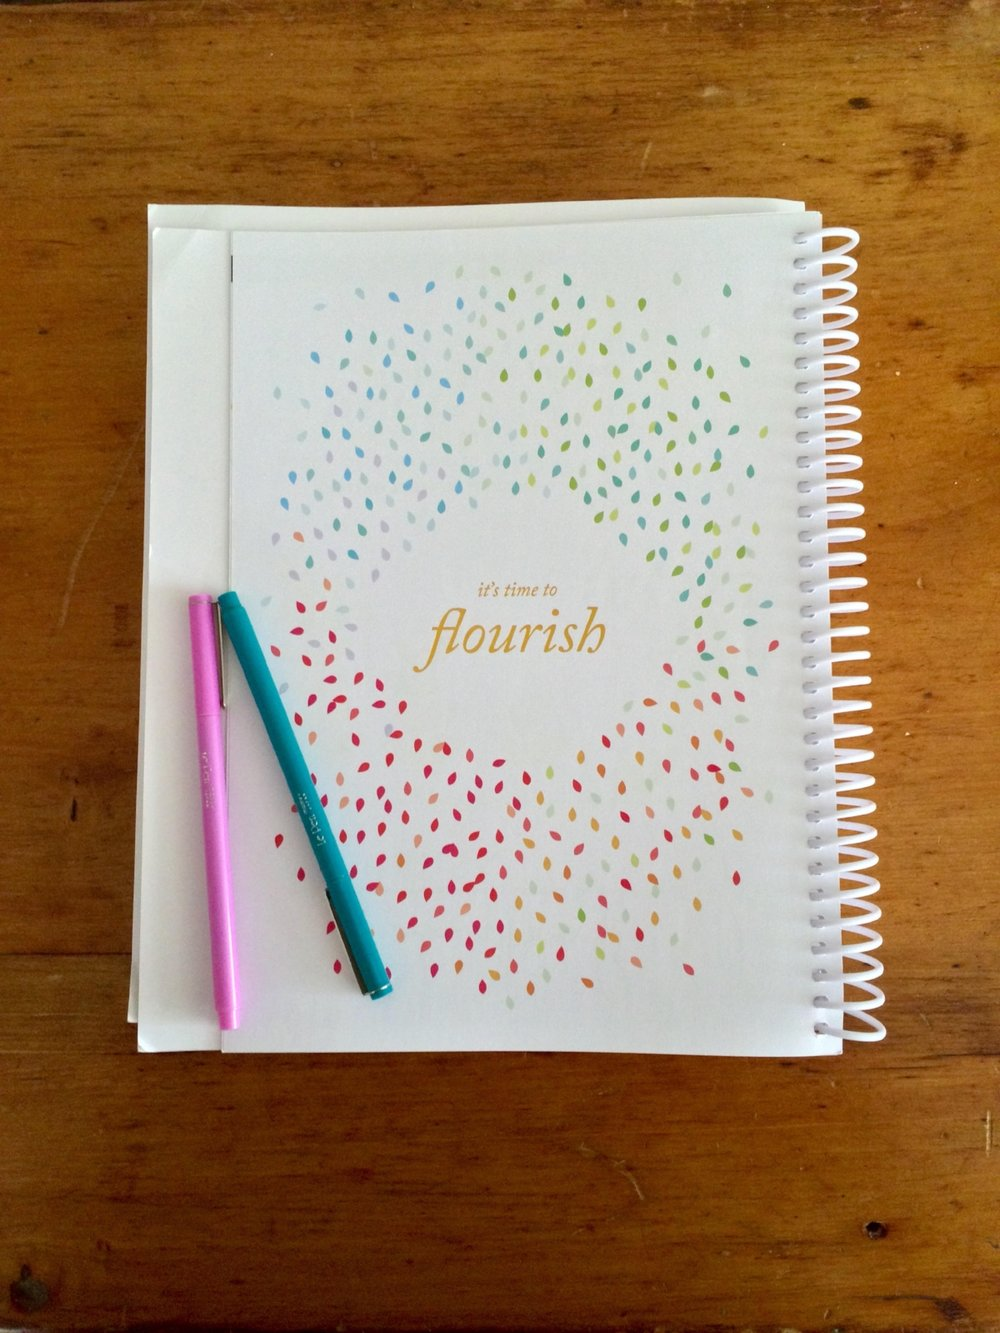 The spiral bound PowerSheets are as beautiful as they are functional. Sprinkled throughout are colorful pages offering inspiration for the goal setting process.